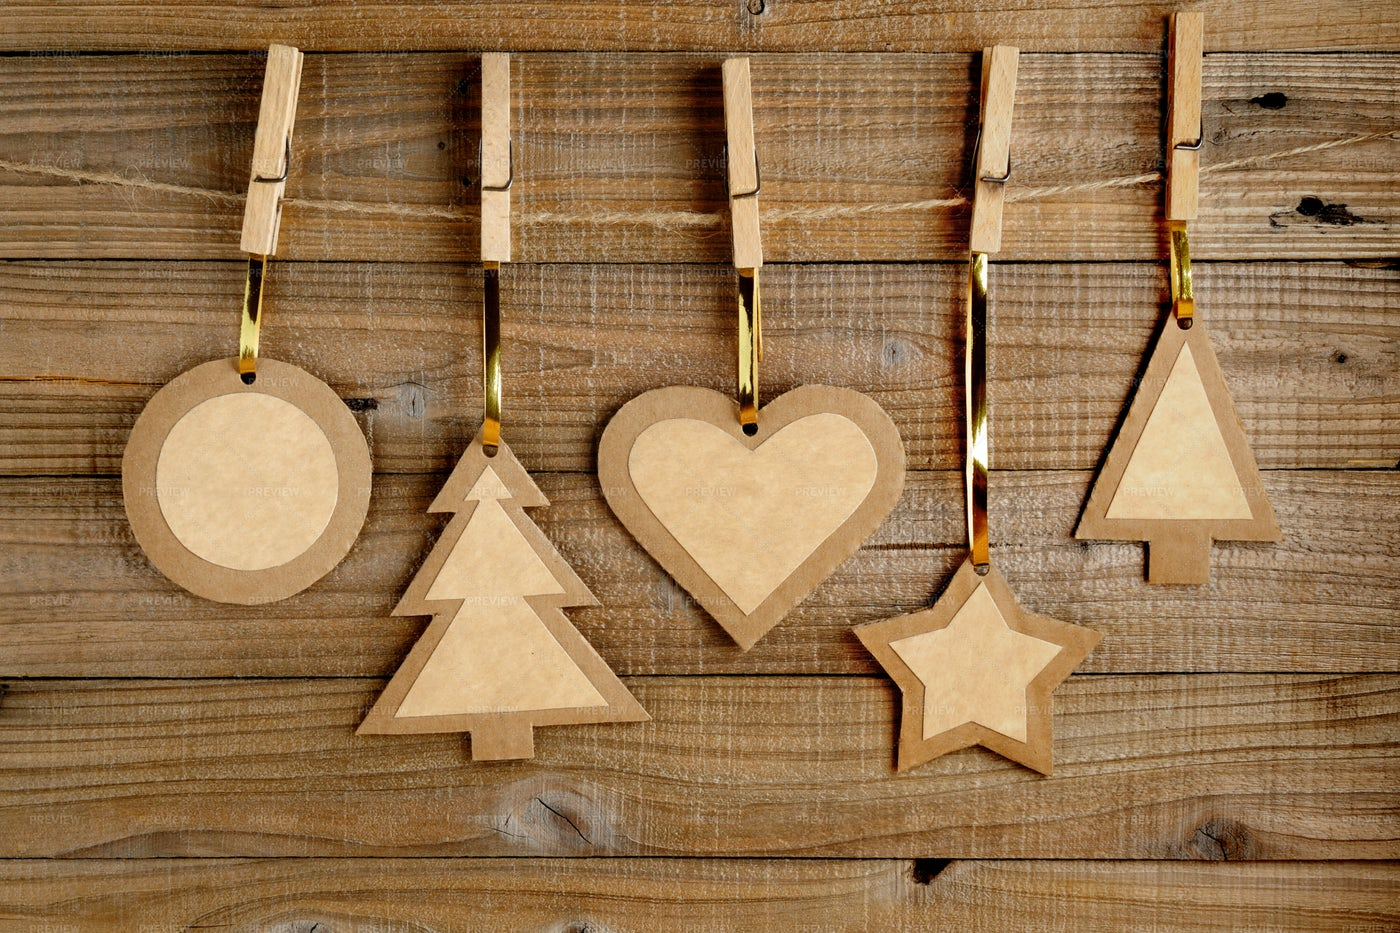 Old Paper Christmas Decorations: Stock Photos